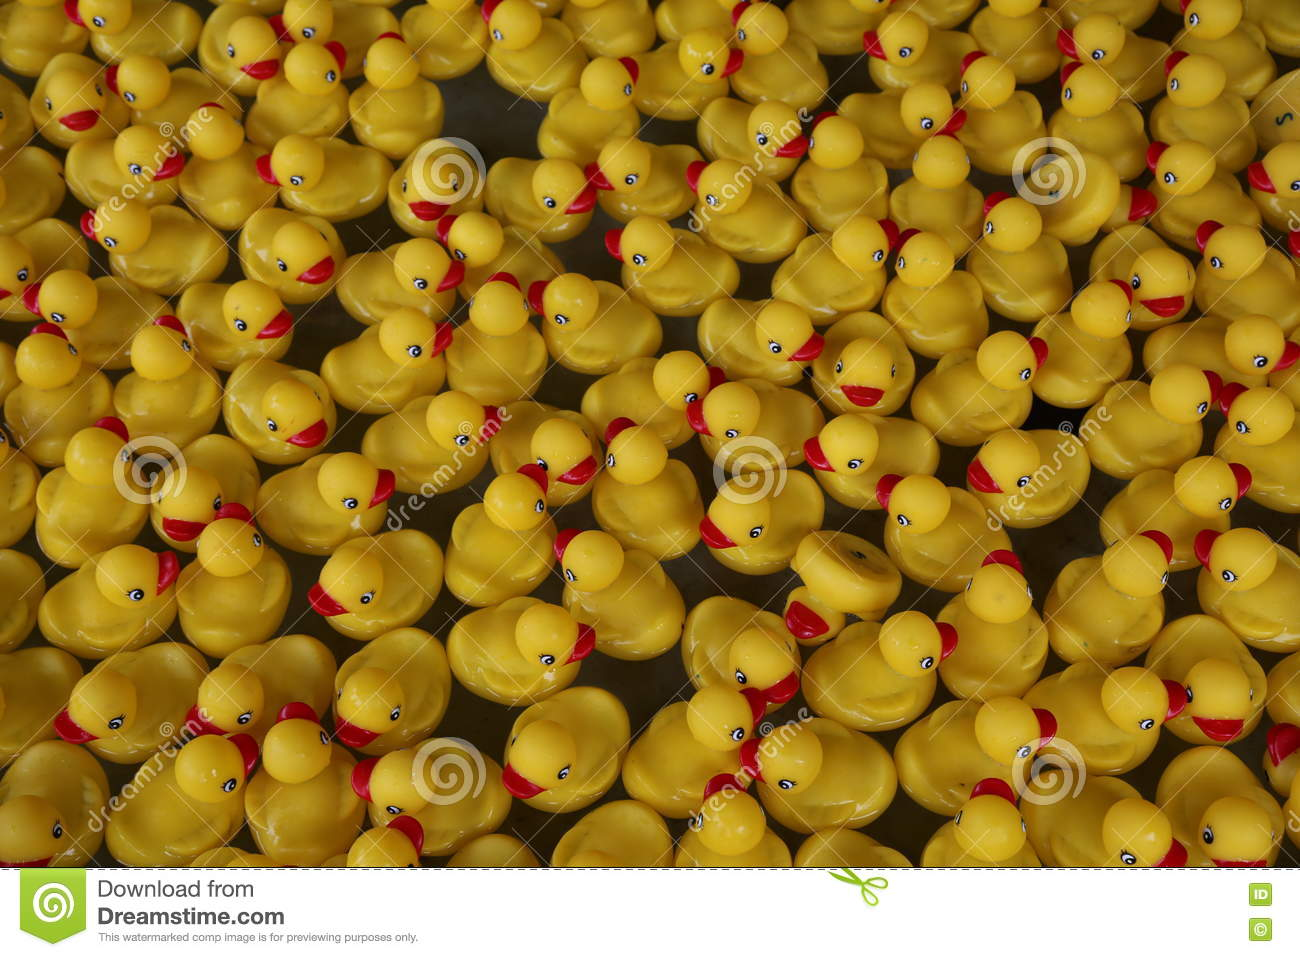 Yellow Rubber Duckies stock photo. Image of duckies, pond - 82416364